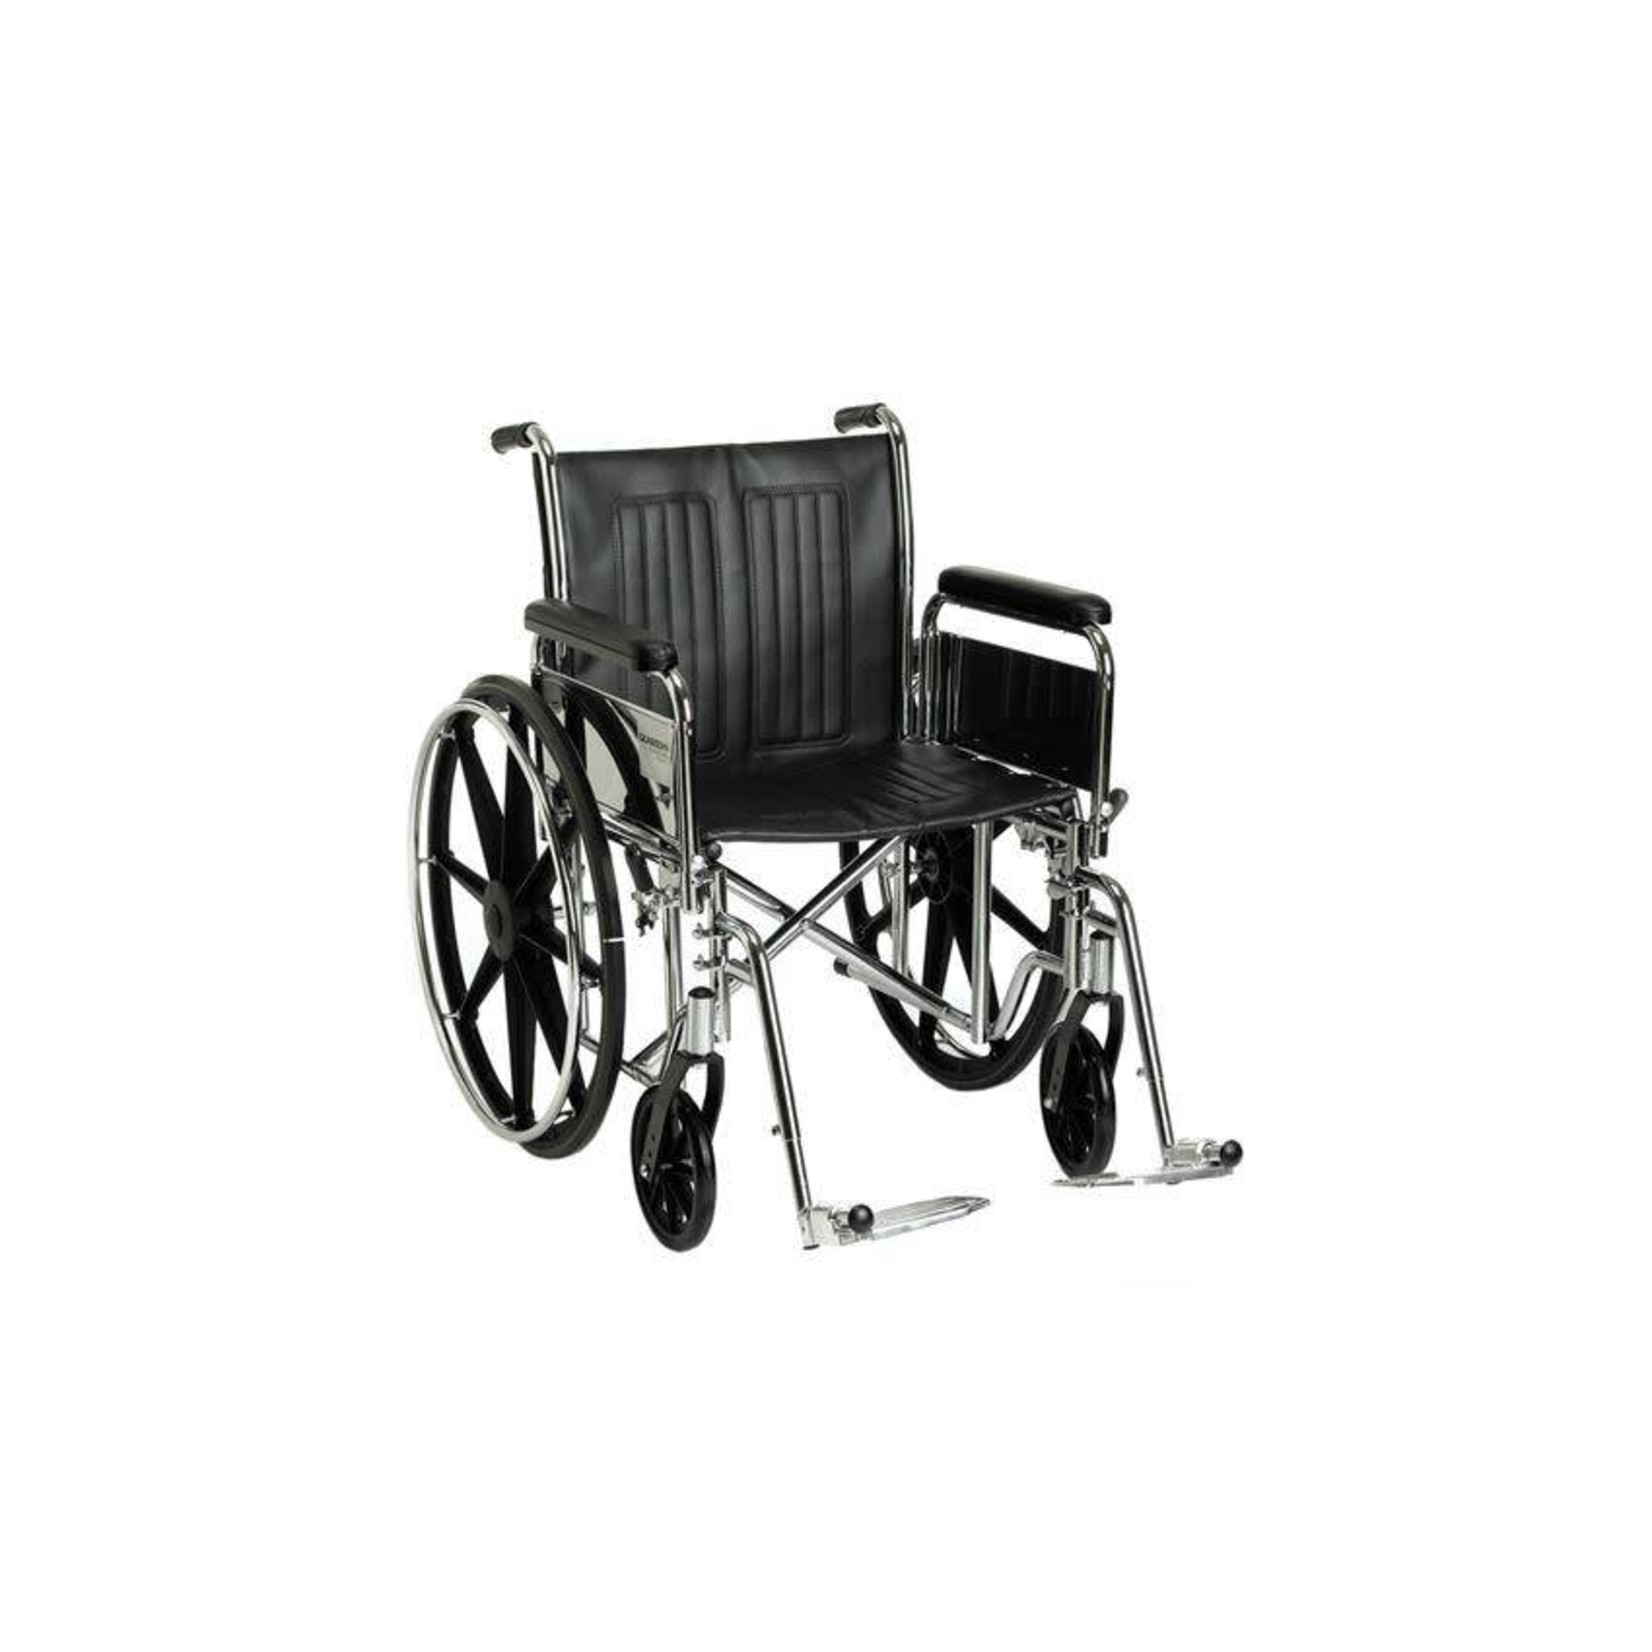 Wheelchair - Online Rental Reservation in Eastern Palm Beach County